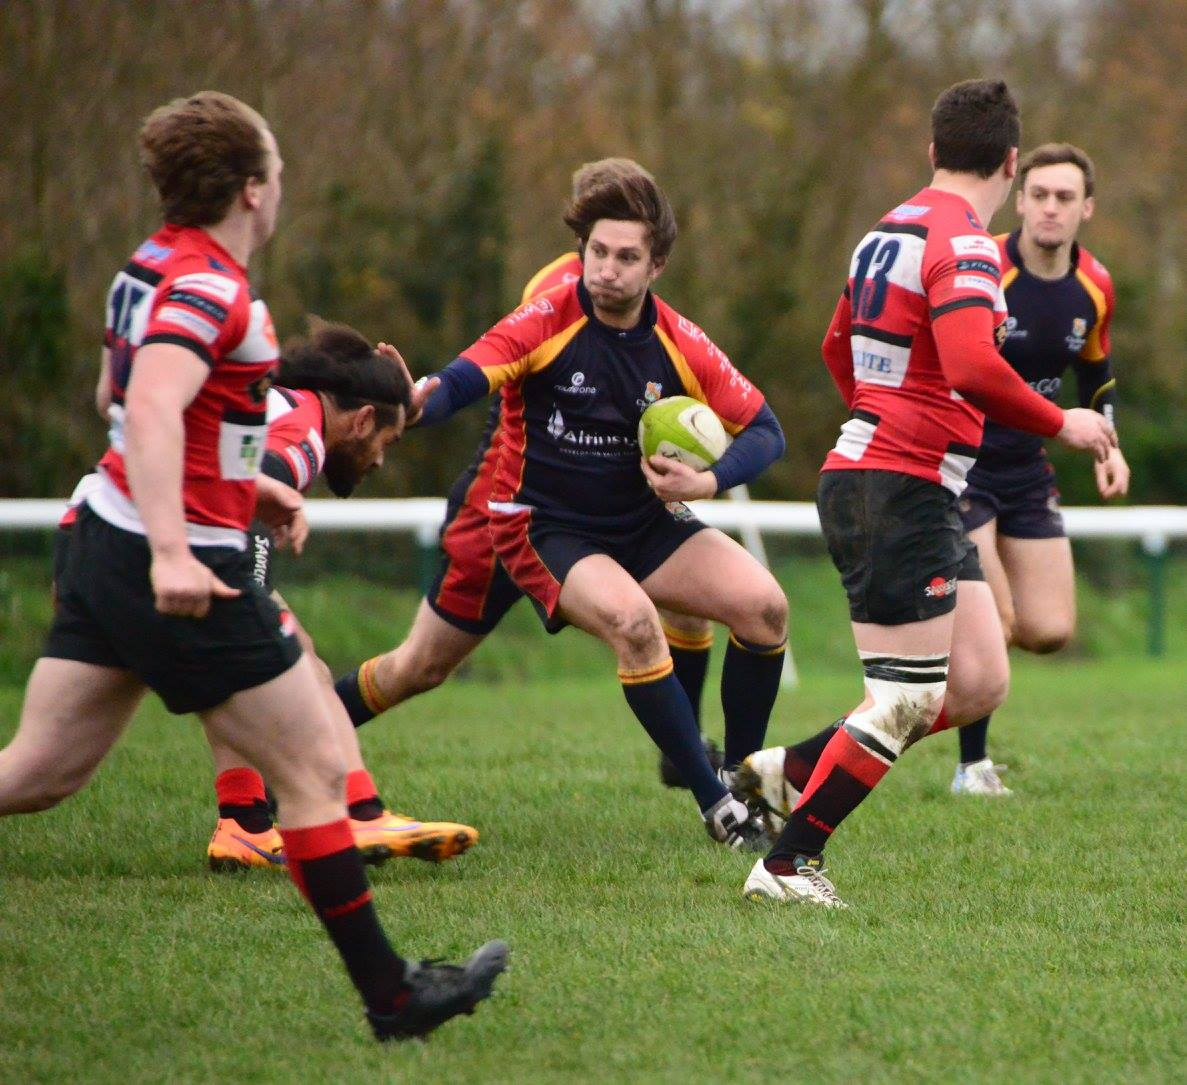 Chobham 1st XV in second half blues against Maidstone